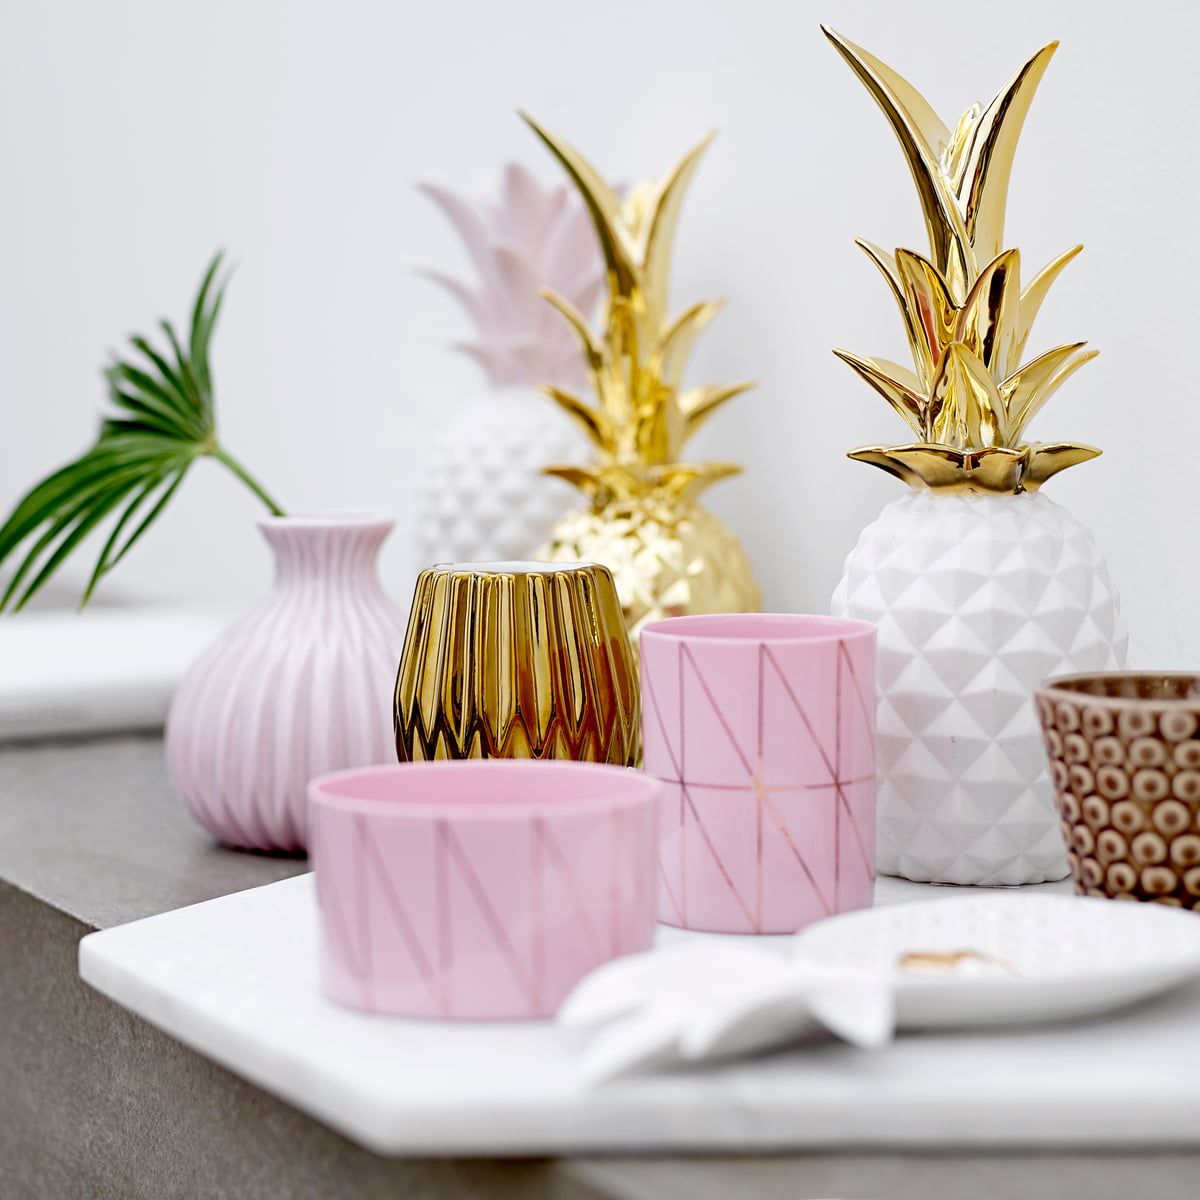 Decorative pineapple by bloomingville shop Ananas dekoration